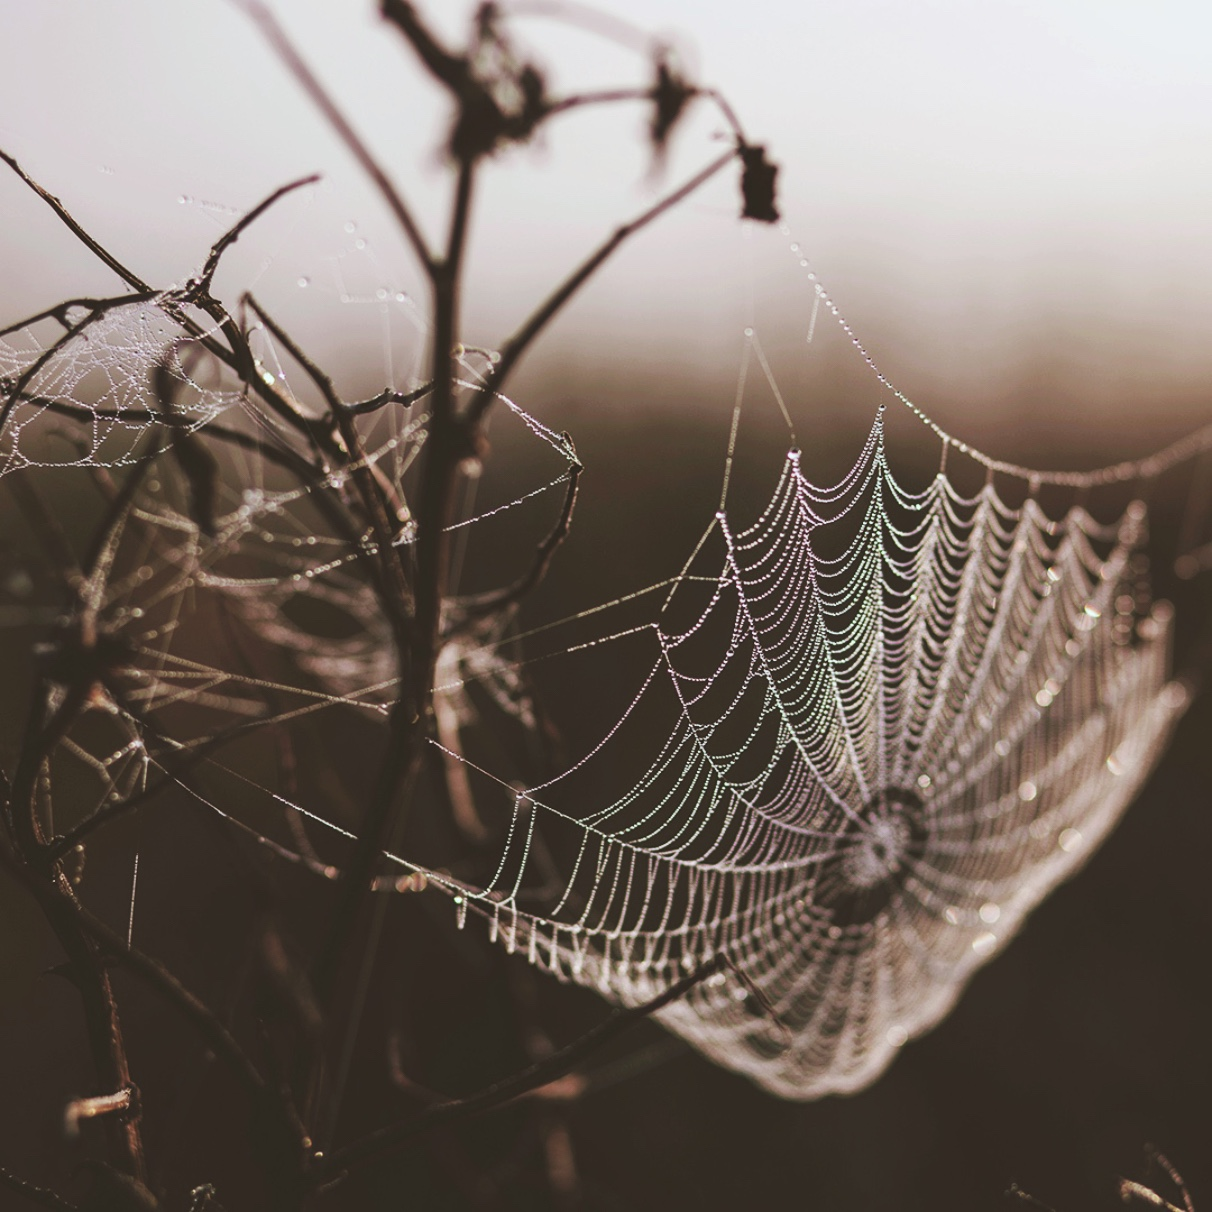 close up of a spider web with morning dew on it